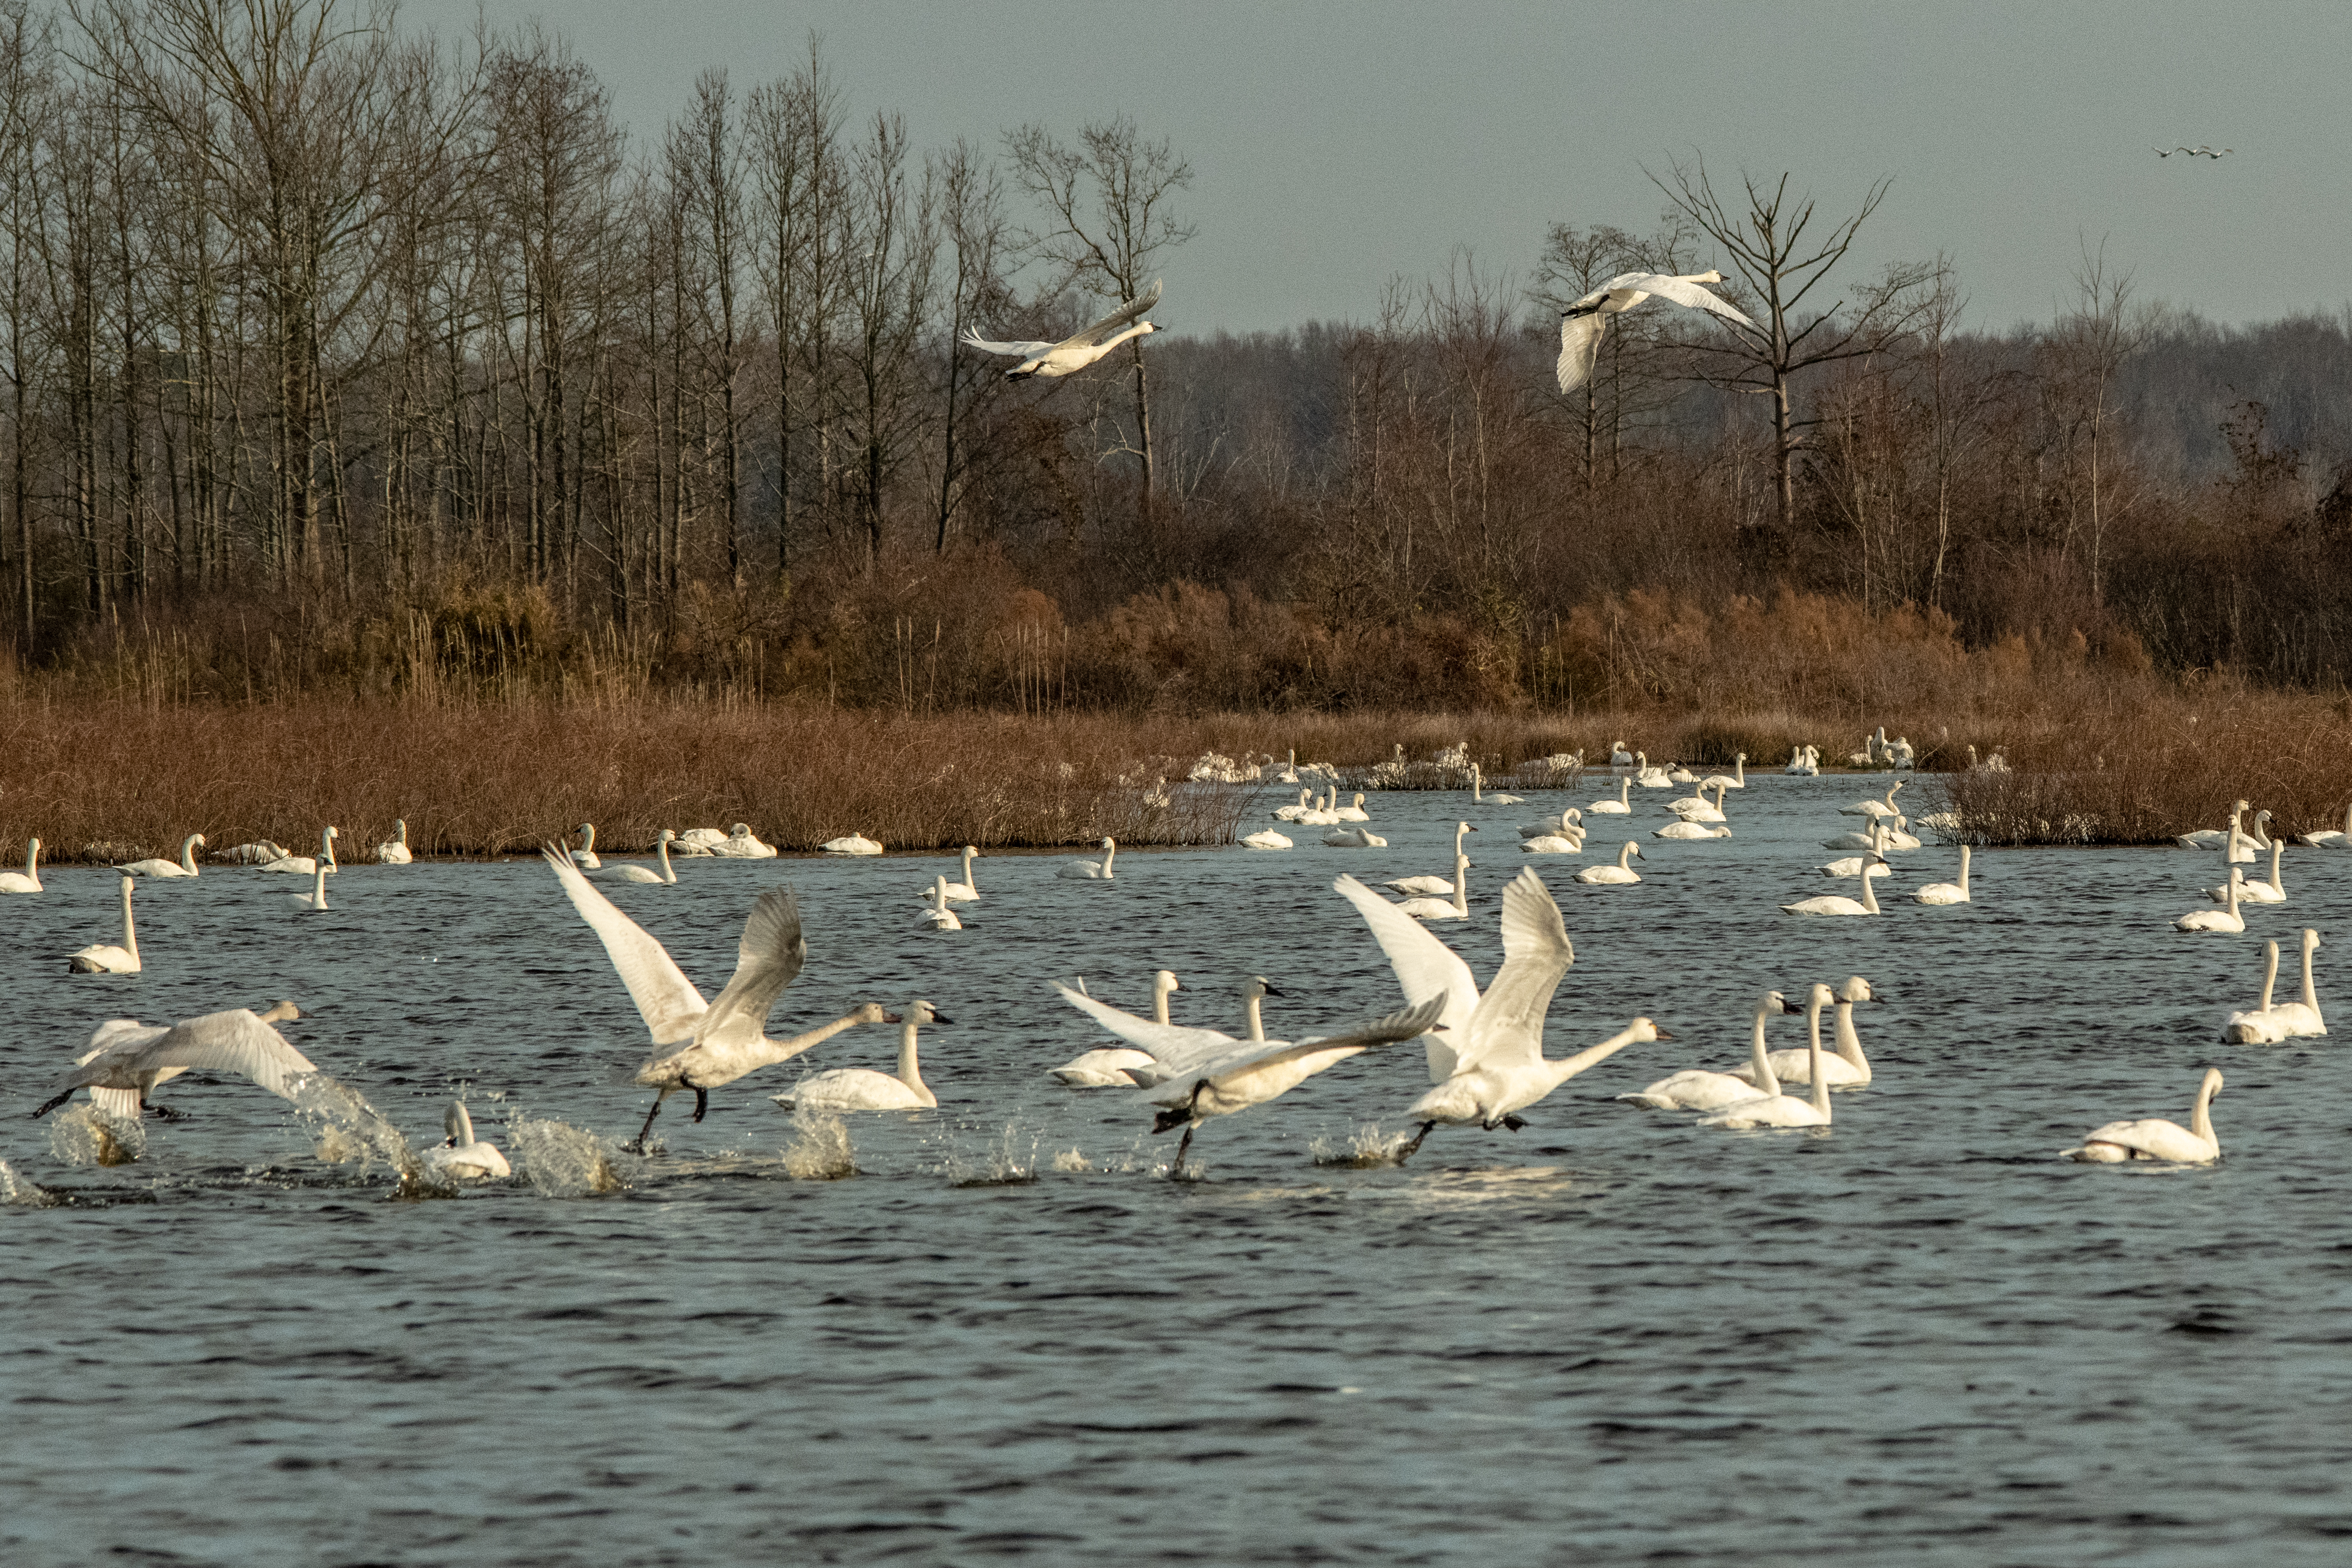 Snow geese and tundra swans, Roman history, and another